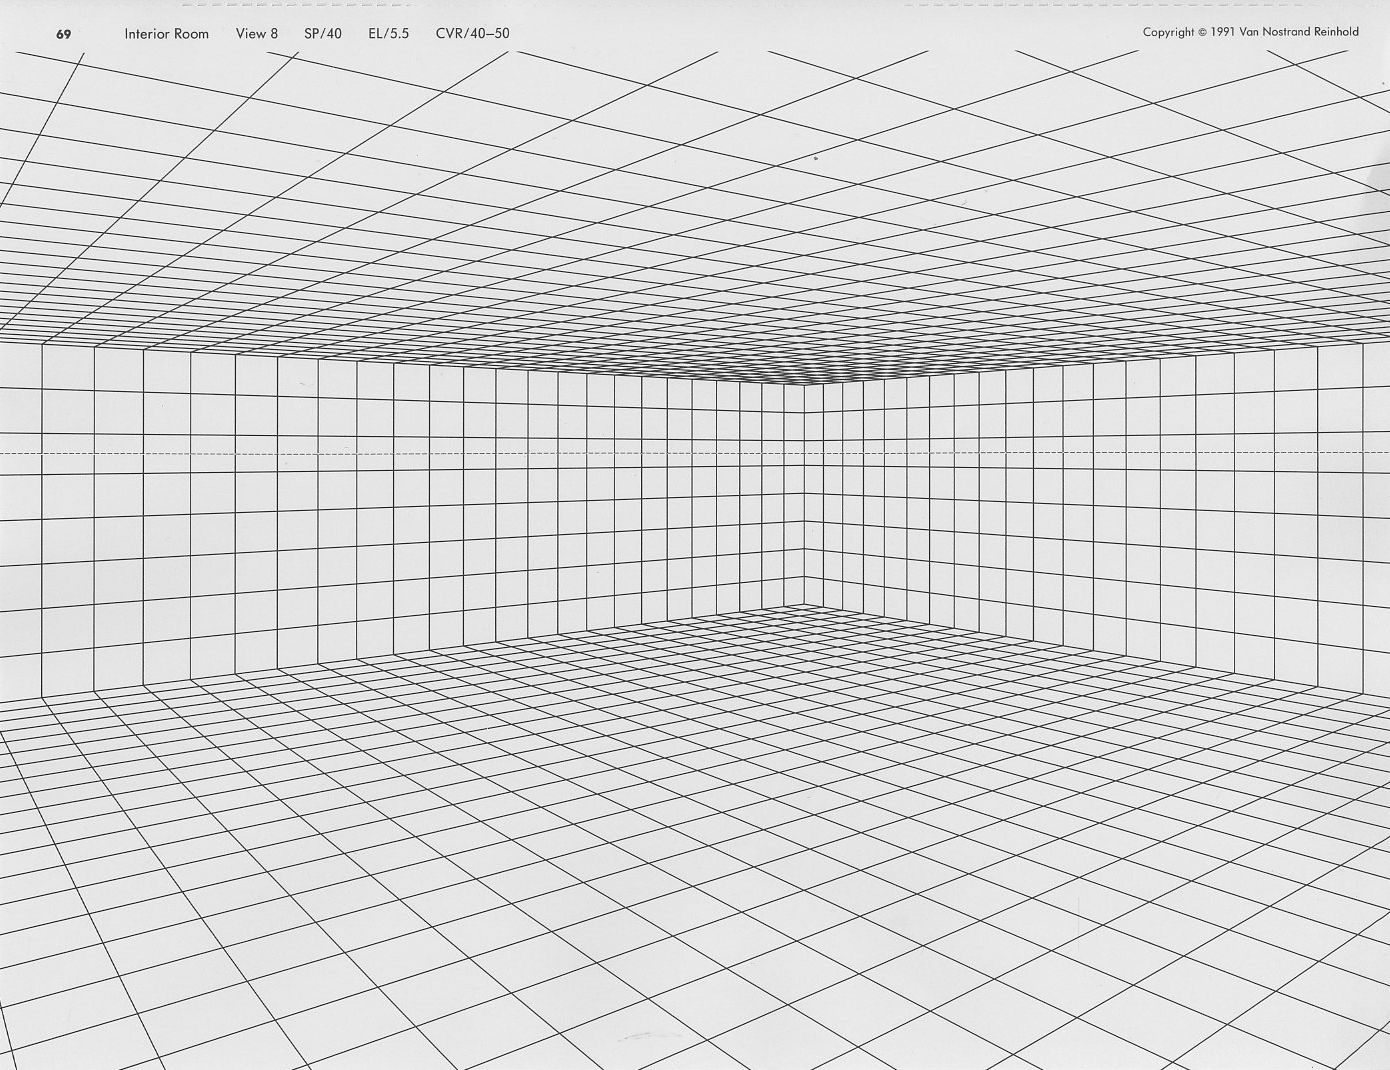 Perspective Grid  (Meant for Interiors but use as needed)